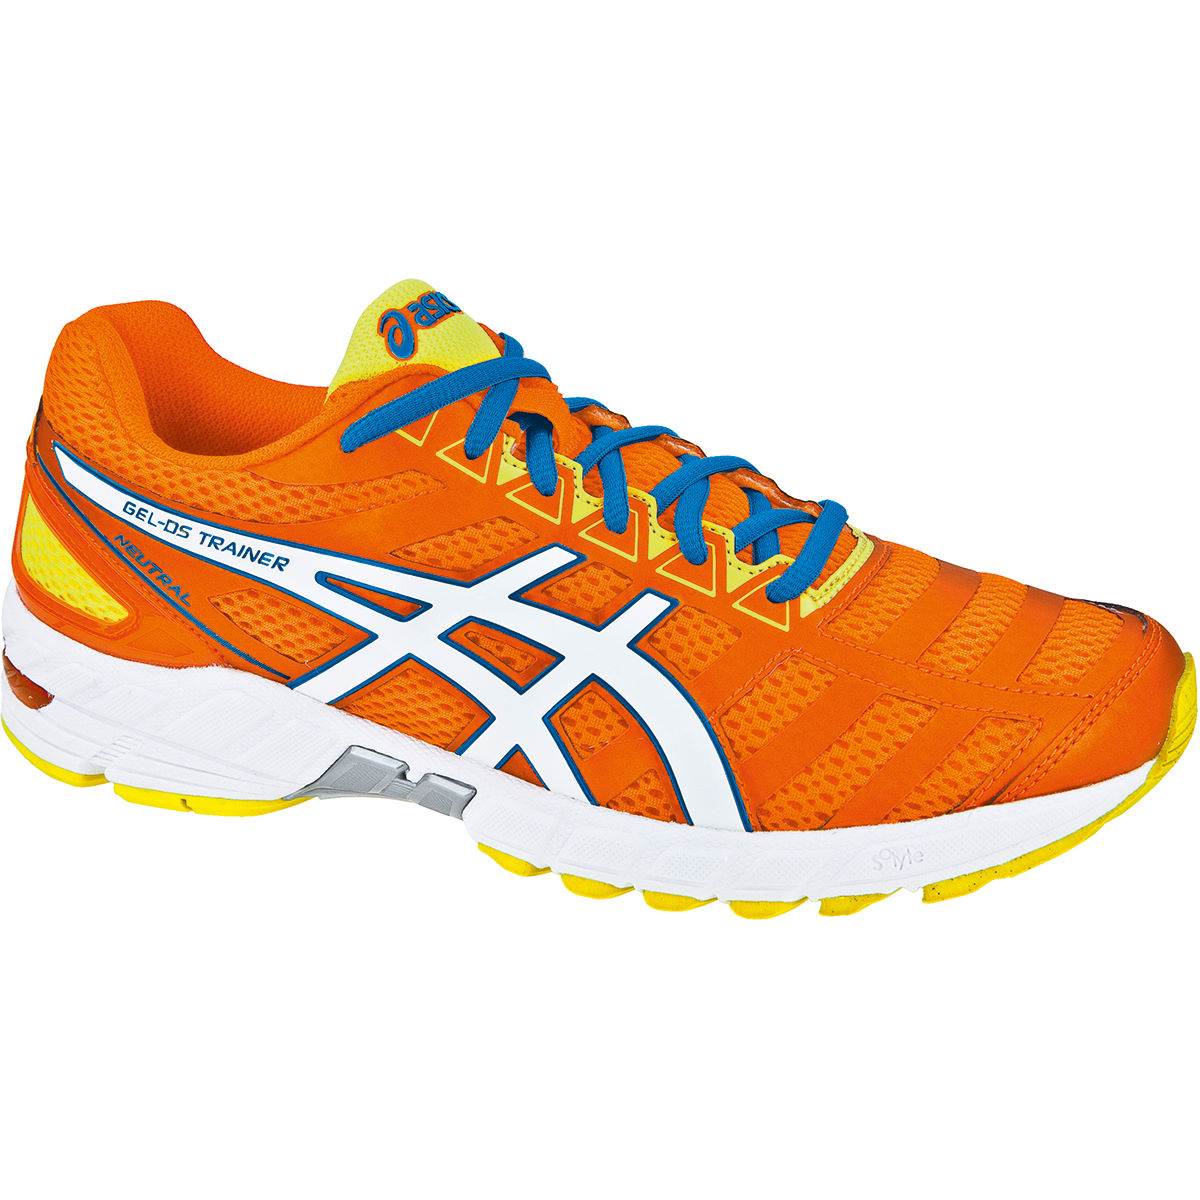 http://www.wigglestatic.com/product-media/5360082799/asics-gel-ds-trainer-18-neutral-orange-1-aw13-T31RQ_3001.jpg?w=1200&h=1200&a=7